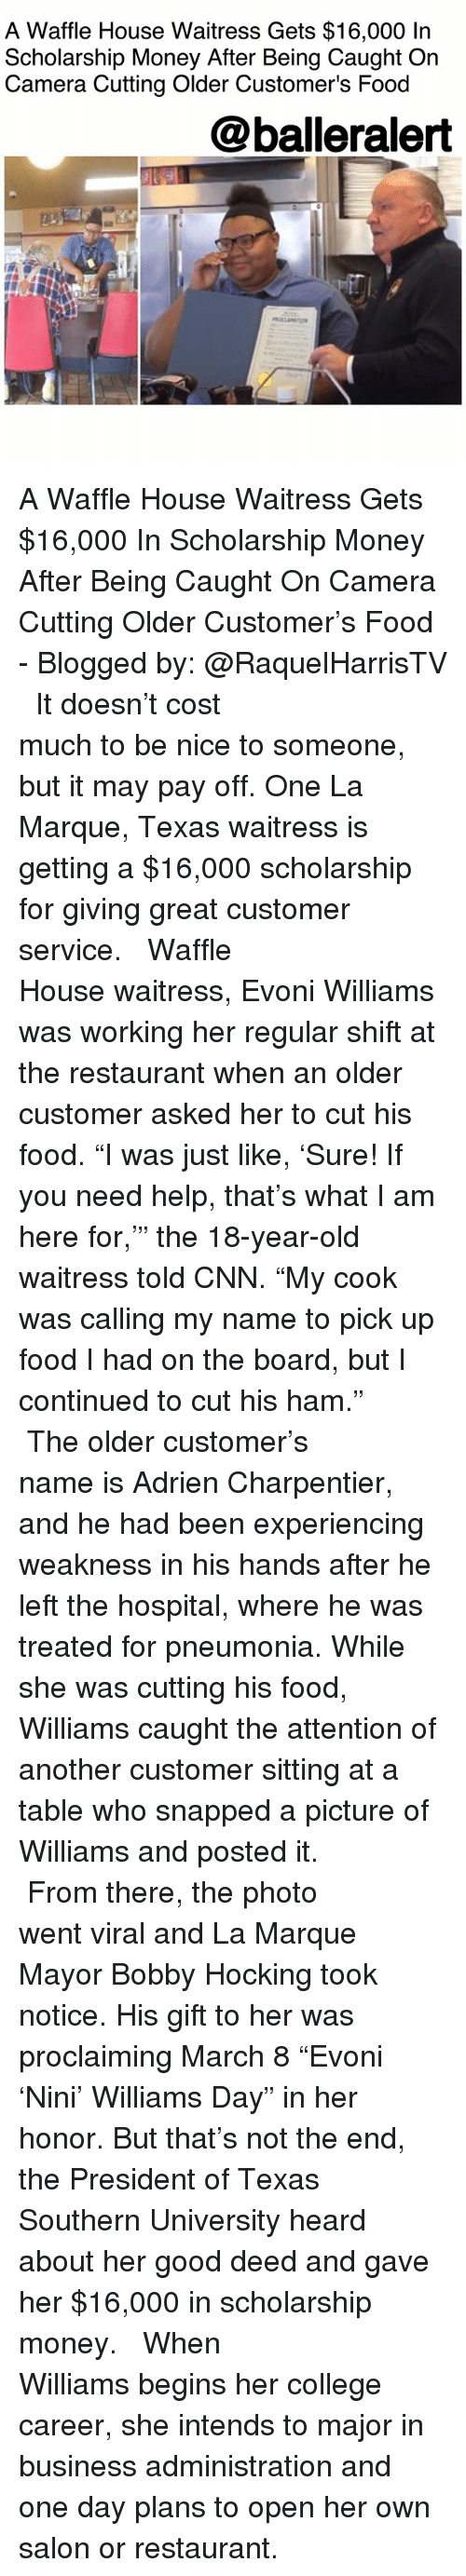 "cnn.com, College, and Food: A Waffle House Waitress Gets $16,000 In  Scholarship Money After Being Caught On  Camera Cutting Older Customer's Food  @balleralert A Waffle House Waitress Gets $16,000 In Scholarship Money After Being Caught On Camera Cutting Older Customer's Food - Blogged by: @RaquelHarrisTV ⠀⠀⠀⠀⠀⠀⠀⠀⠀ ⠀⠀⠀⠀⠀⠀⠀⠀⠀ It doesn't cost much to be nice to someone, but it may pay off. One La Marque, Texas waitress is getting a $16,000 scholarship for giving great customer service. ⠀⠀⠀⠀⠀⠀⠀⠀⠀ ⠀⠀⠀⠀⠀⠀⠀⠀⠀ Waffle House waitress, Evoni Williams was working her regular shift at the restaurant when an older customer asked her to cut his food. ""I was just like, 'Sure! If you need help, that's what I am here for,'"" the 18-year-old waitress told CNN. ""My cook was calling my name to pick up food I had on the board, but I continued to cut his ham."" ⠀⠀⠀⠀⠀⠀⠀⠀⠀ ⠀⠀⠀⠀⠀⠀⠀⠀⠀ The older customer's name is Adrien Charpentier, and he had been experiencing weakness in his hands after he left the hospital, where he was treated for pneumonia. While she was cutting his food, Williams caught the attention of another customer sitting at a table who snapped a picture of Williams and posted it. ⠀⠀⠀⠀⠀⠀⠀⠀⠀ ⠀⠀⠀⠀⠀⠀⠀⠀⠀ From there, the photo went viral and La Marque Mayor Bobby Hocking took notice. His gift to her was proclaiming March 8 ""Evoni 'Nini' Williams Day"" in her honor. But that's not the end, the President of Texas Southern University heard about her good deed and gave her $16,000 in scholarship money. ⠀⠀⠀⠀⠀⠀⠀⠀⠀ ⠀⠀⠀⠀⠀⠀⠀⠀⠀ When Williams begins her college career, she intends to major in business administration and one day plans to open her own salon or restaurant."